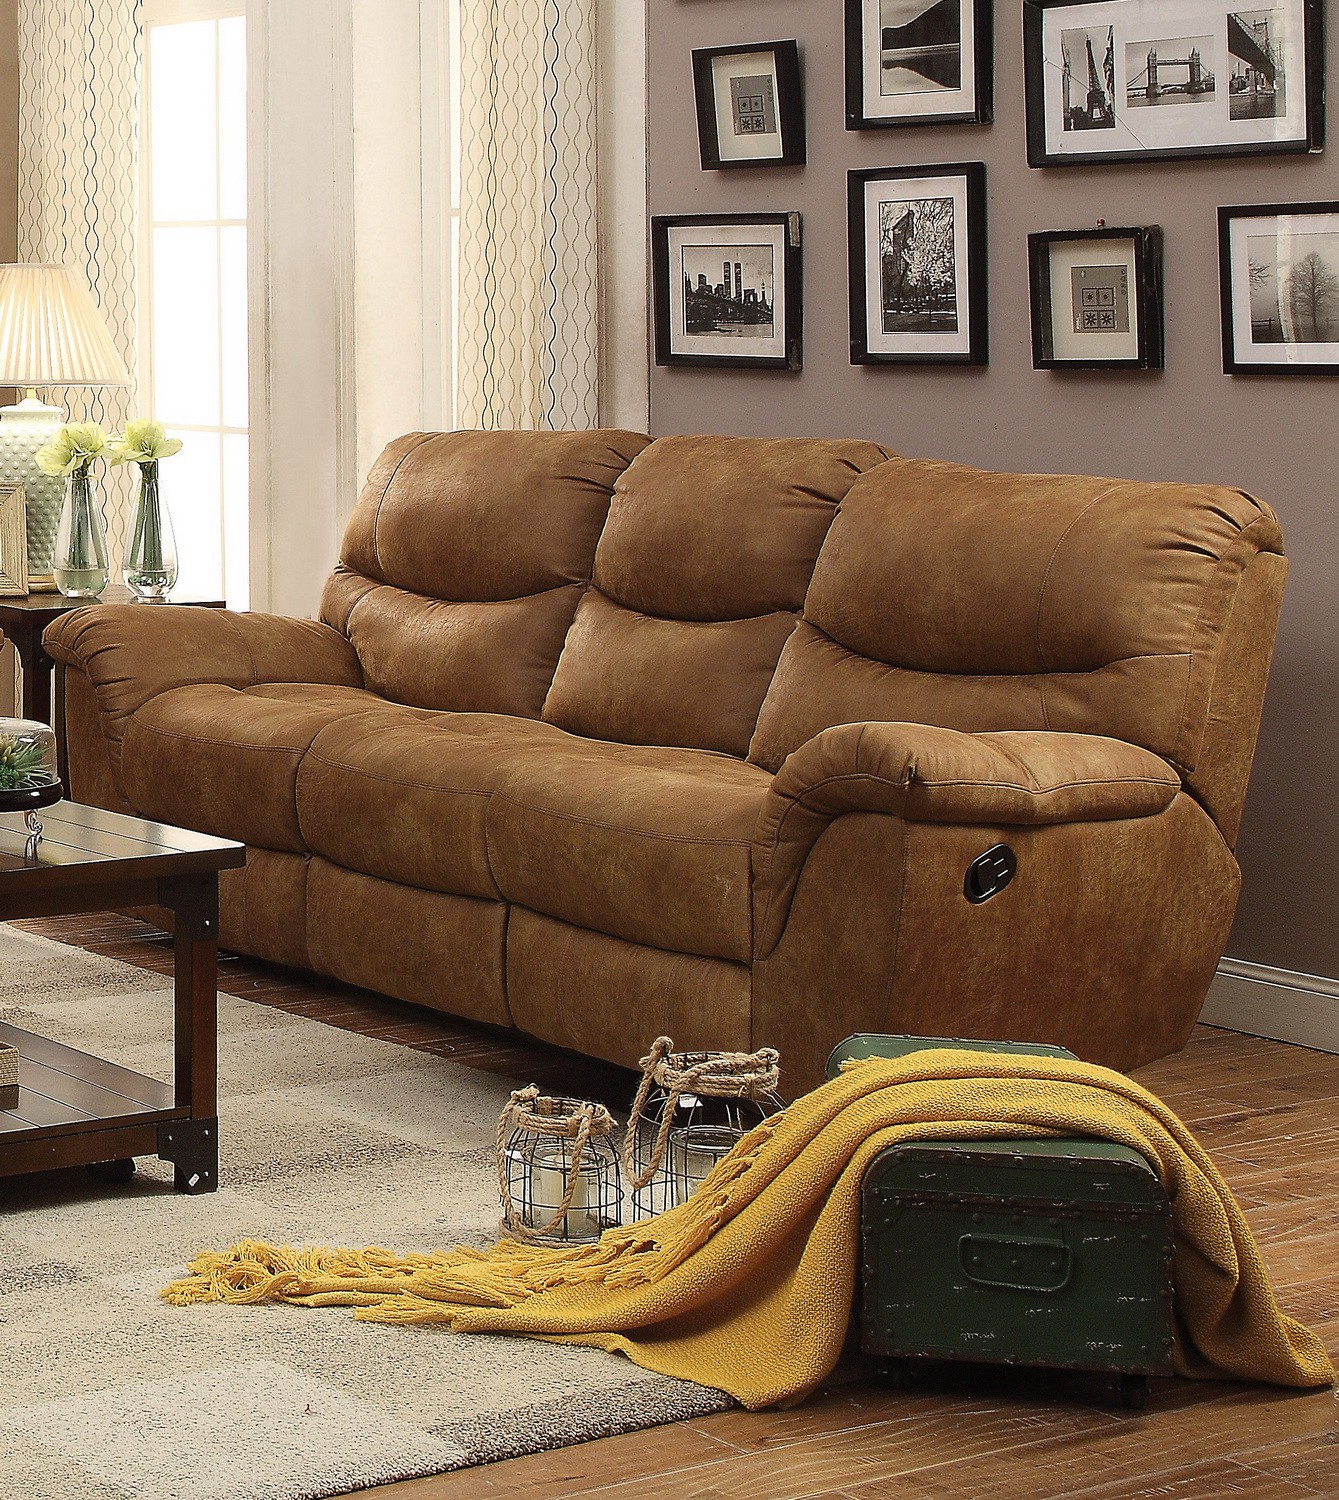 How To Clean A Sofa At Home B Sofas Medium